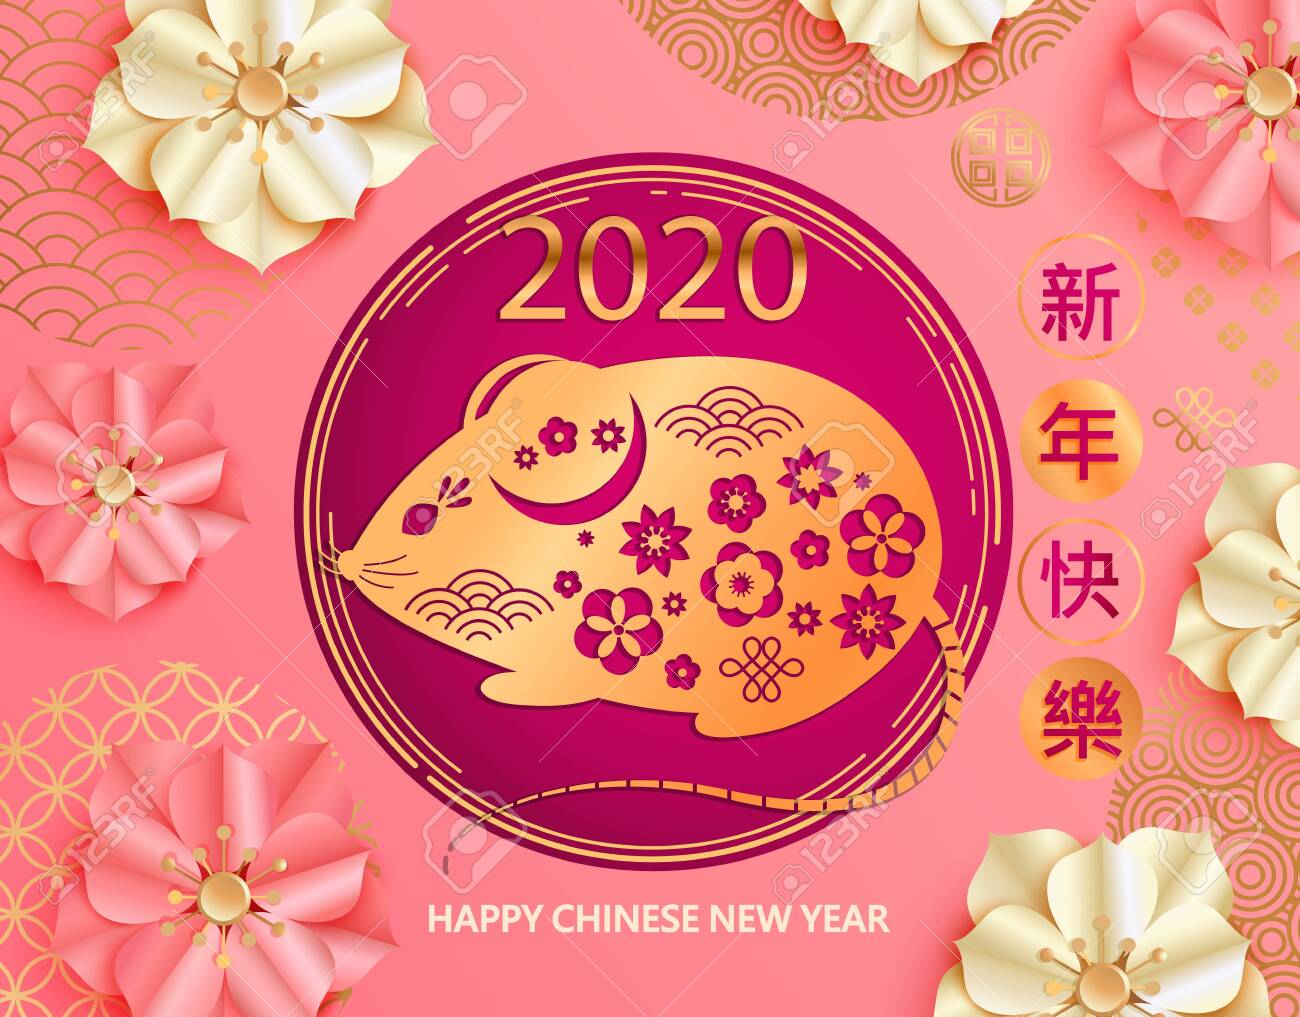 Chinese New Year 2020 greeting card with golden rat and traditional asian flowers,patterns.For banners,flyers,invitation,congratulations.Chinese translation:Happy new year.Vector illustrations. - 133061923